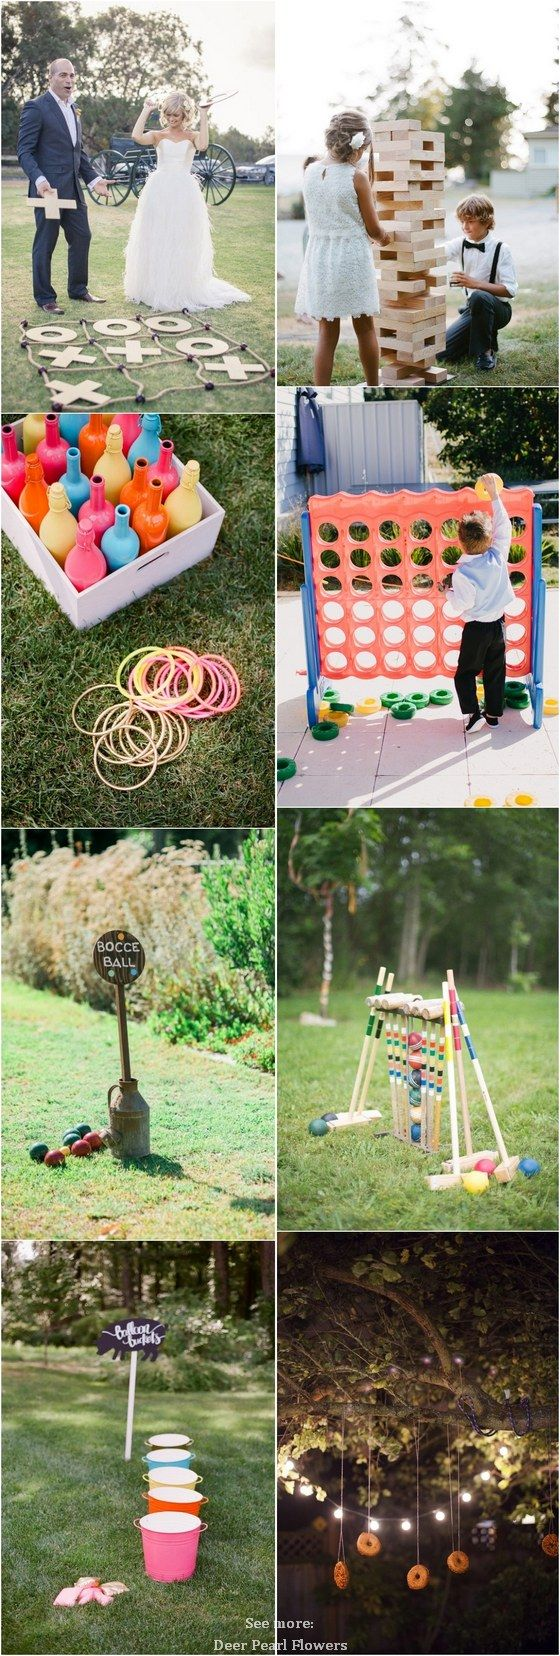 45 Fun Outdoor Wedding Reception Lawn Game Ideas | Lawn games ...